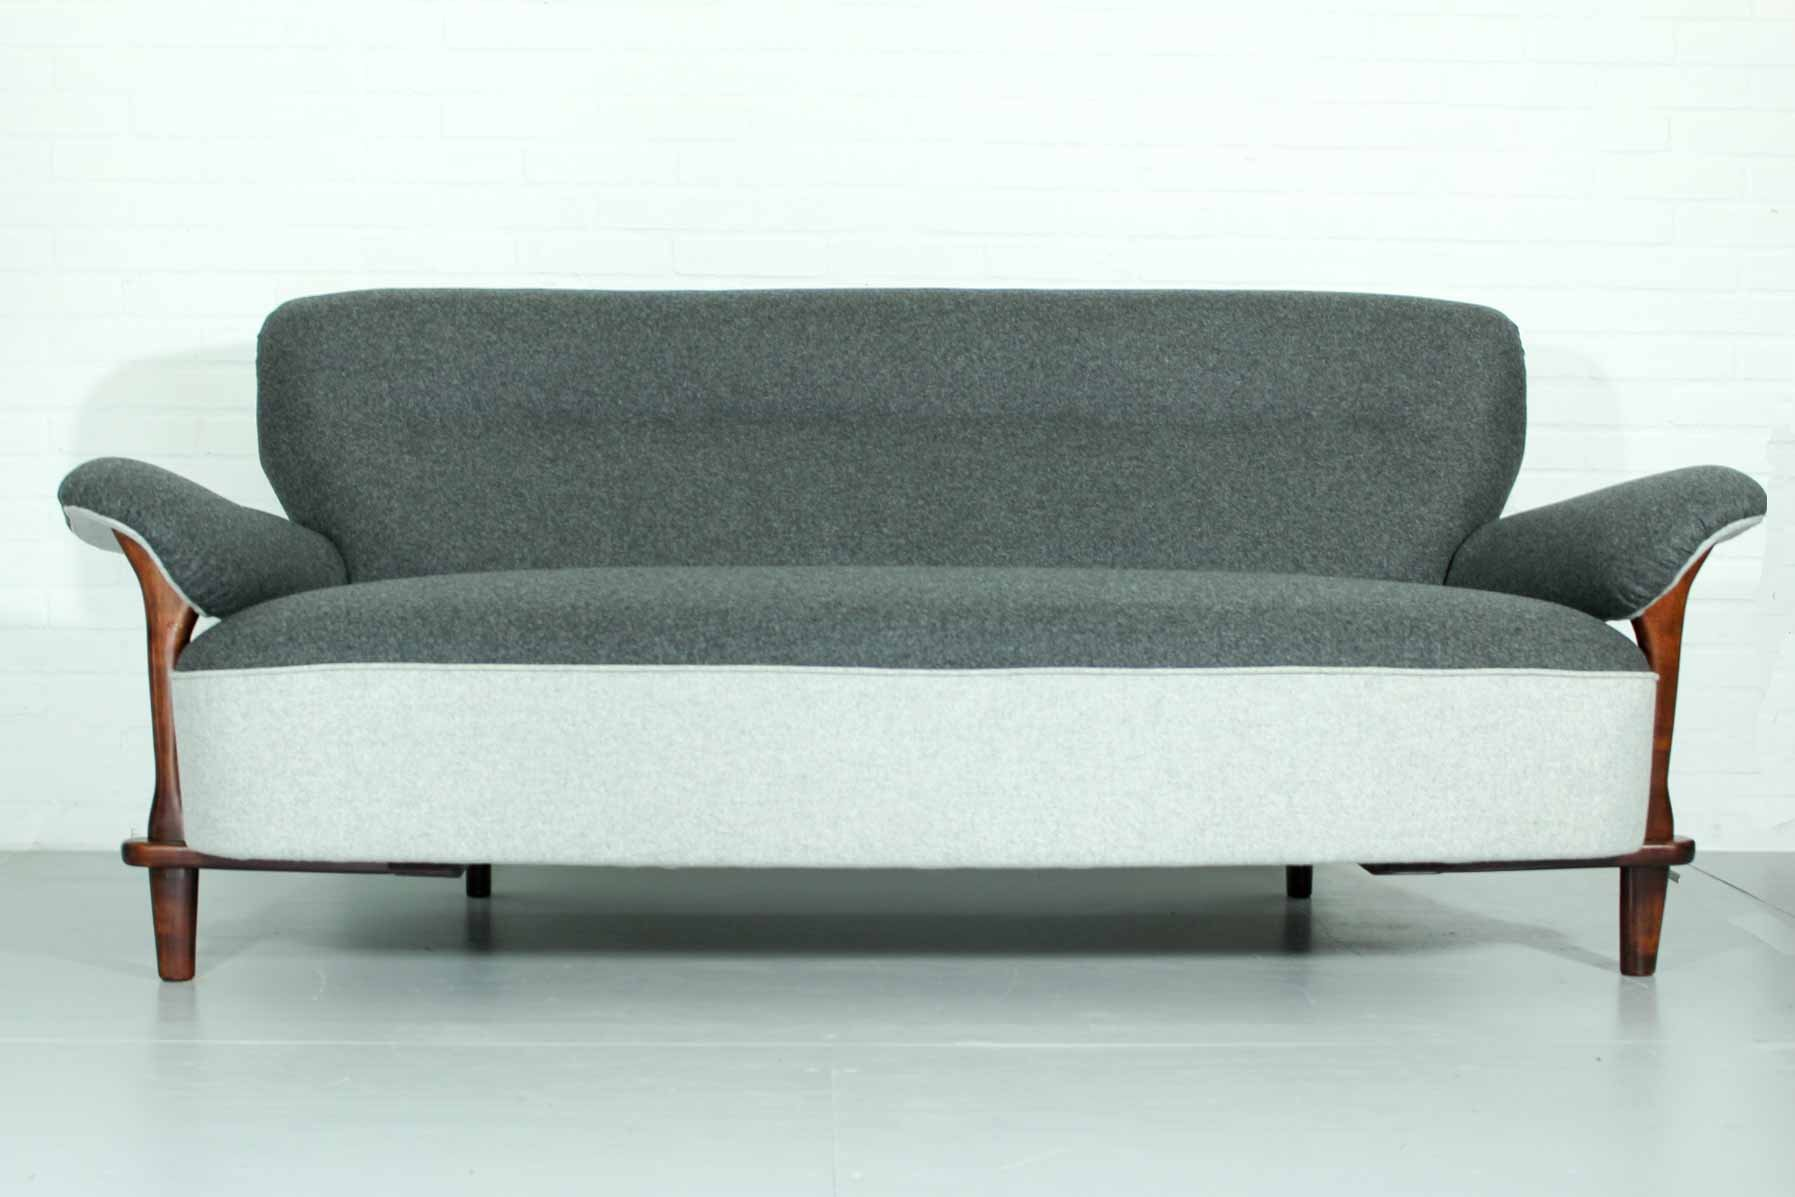 Mid Century Dutch Sofa By Theo Ruth For Artifort 1950s For Sale At Pamono